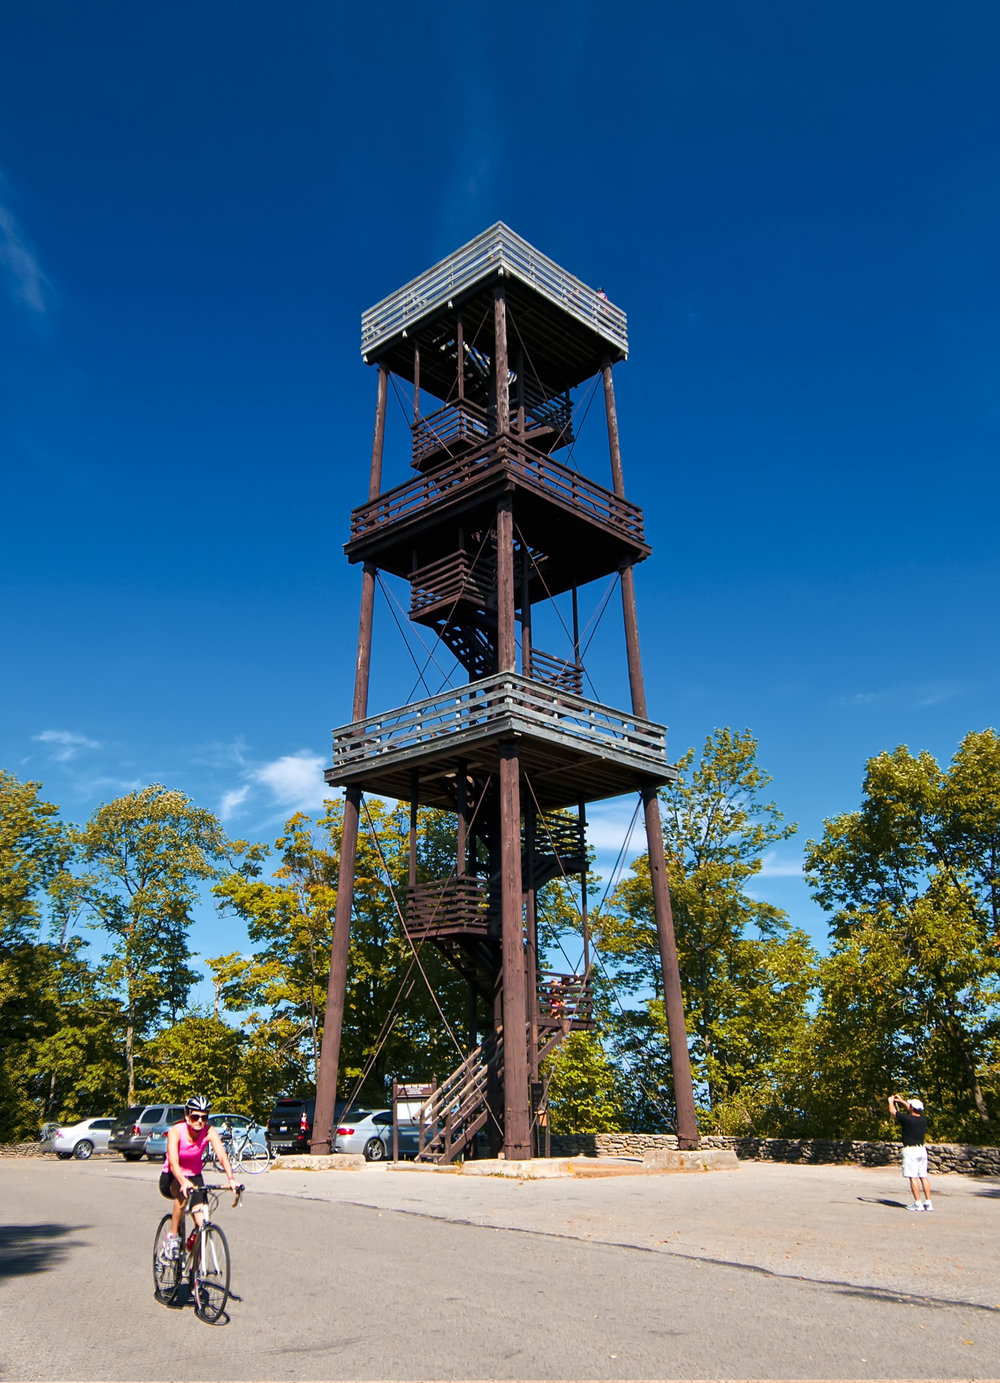 The tower in Peninsula State Park